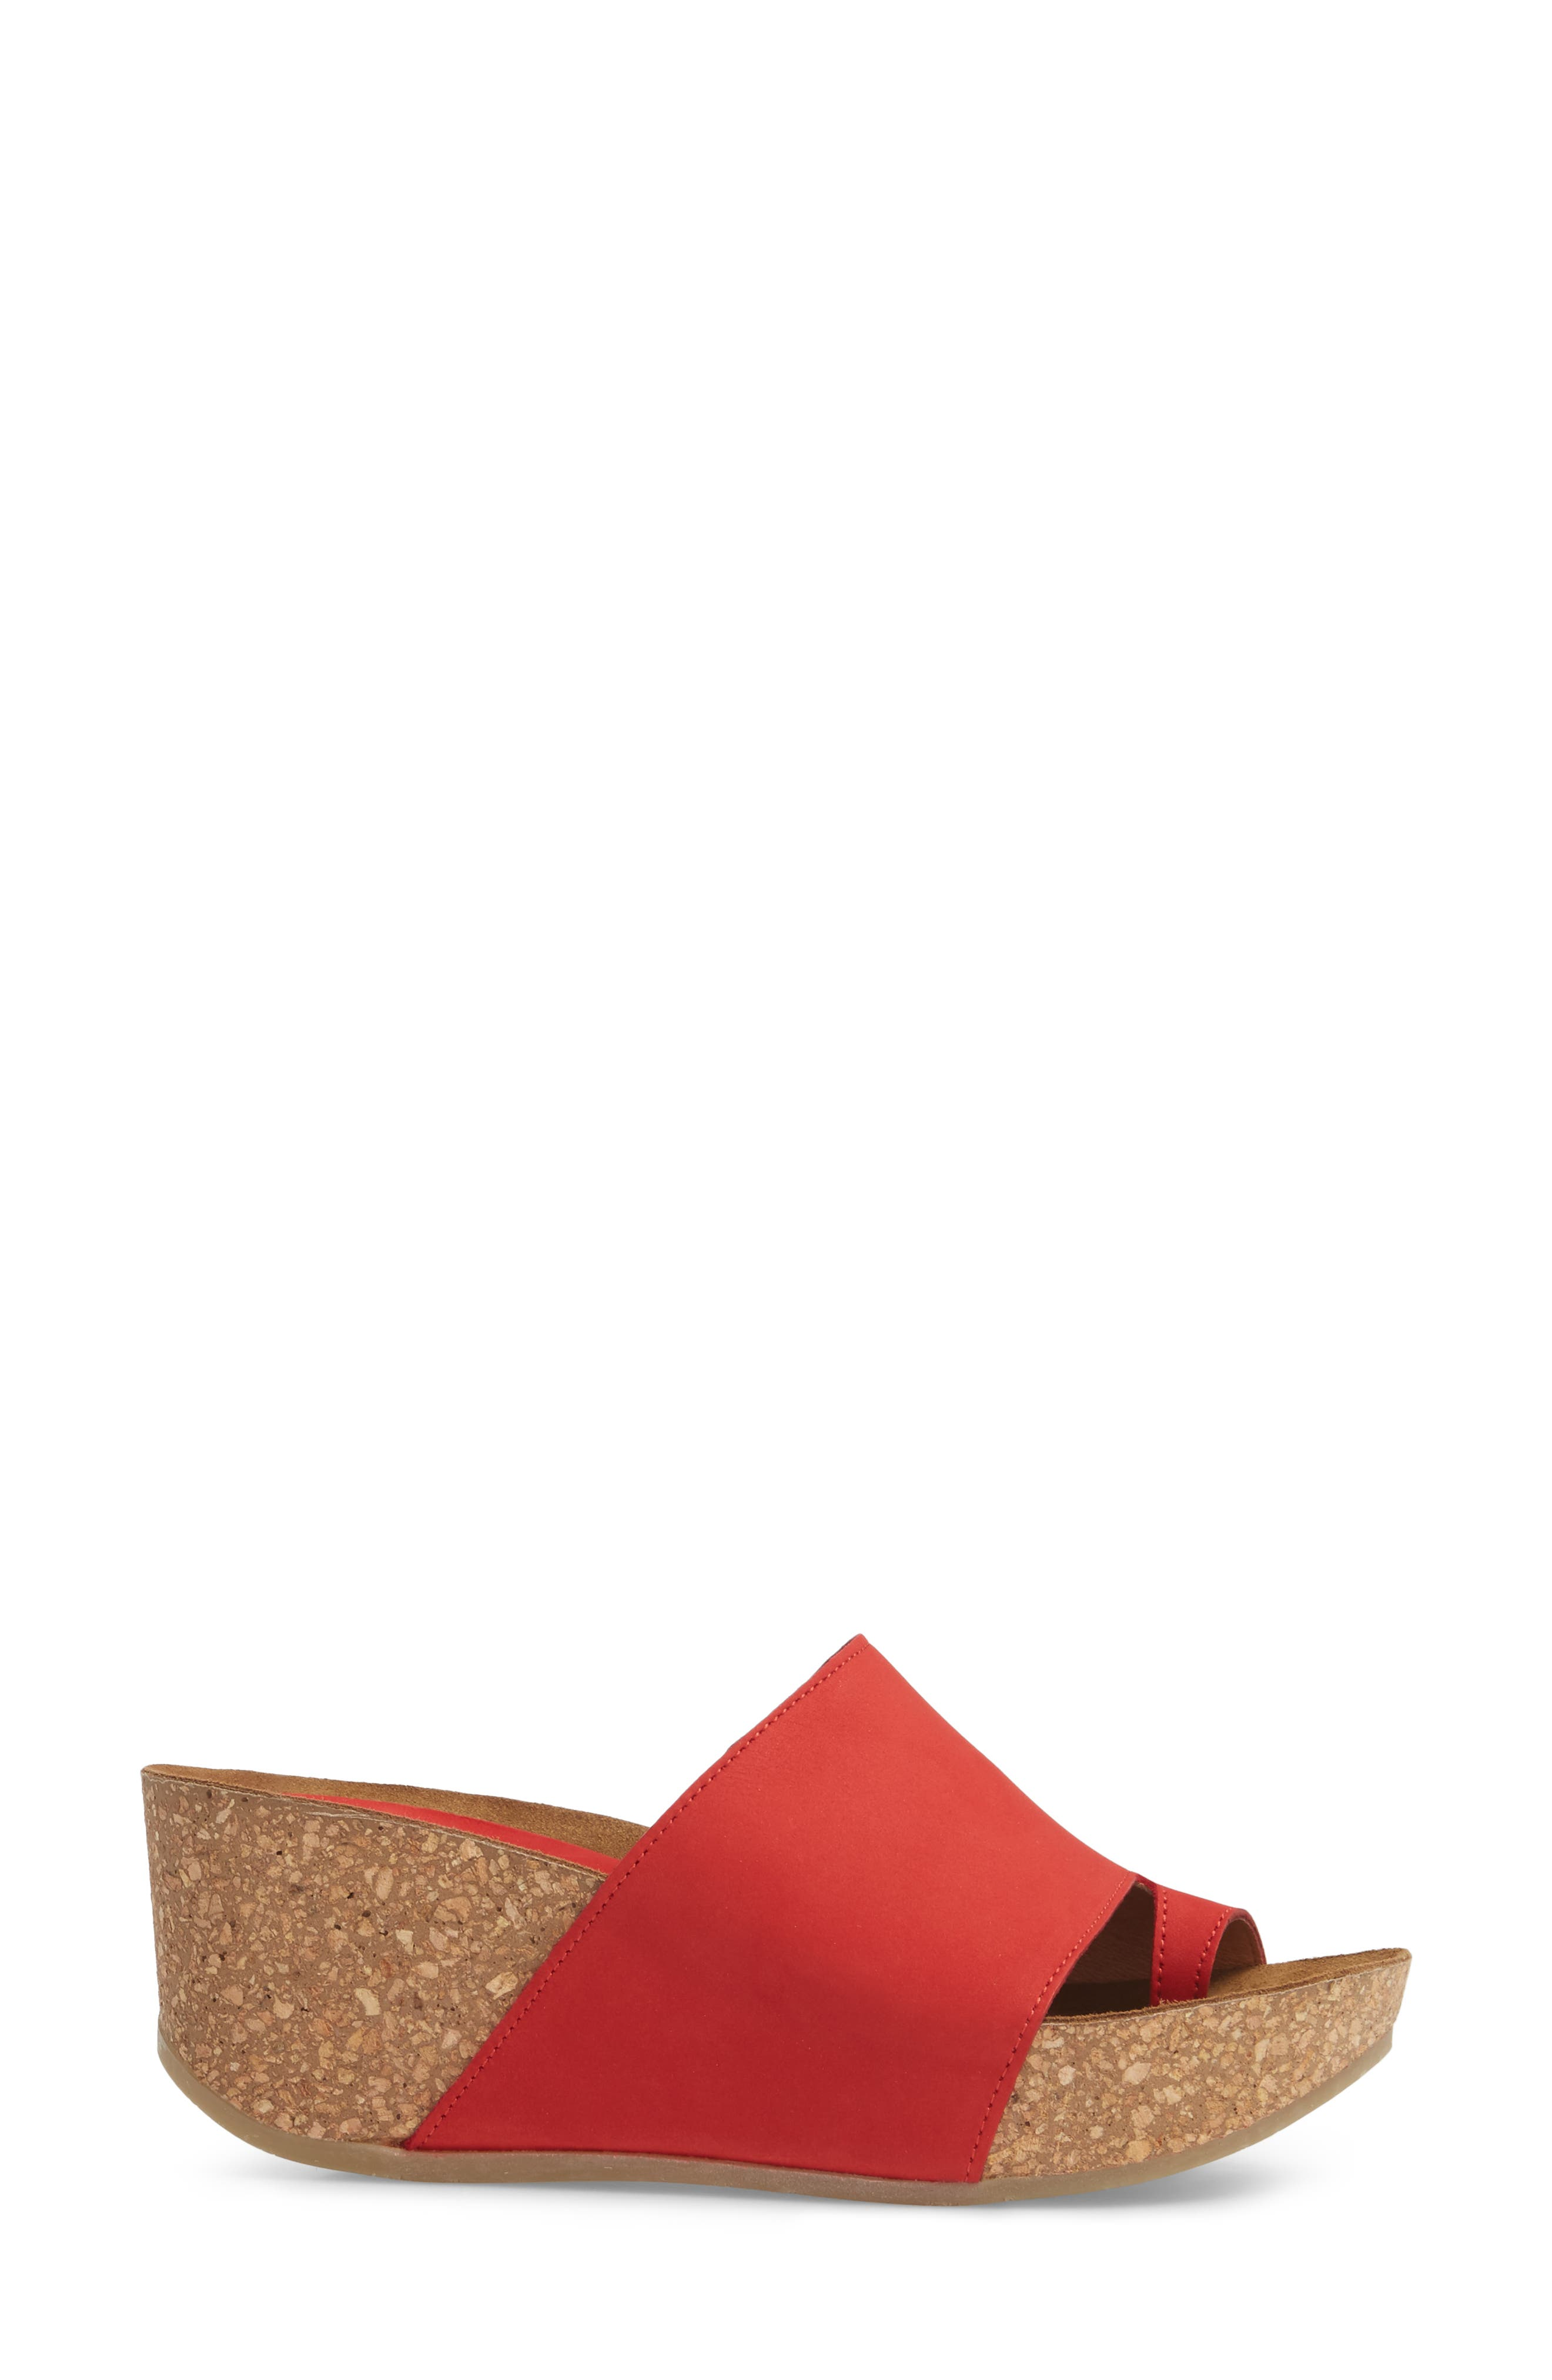 Donald J Pliner Ginie Platform Wedge Sandal,                             Alternate thumbnail 19, color,